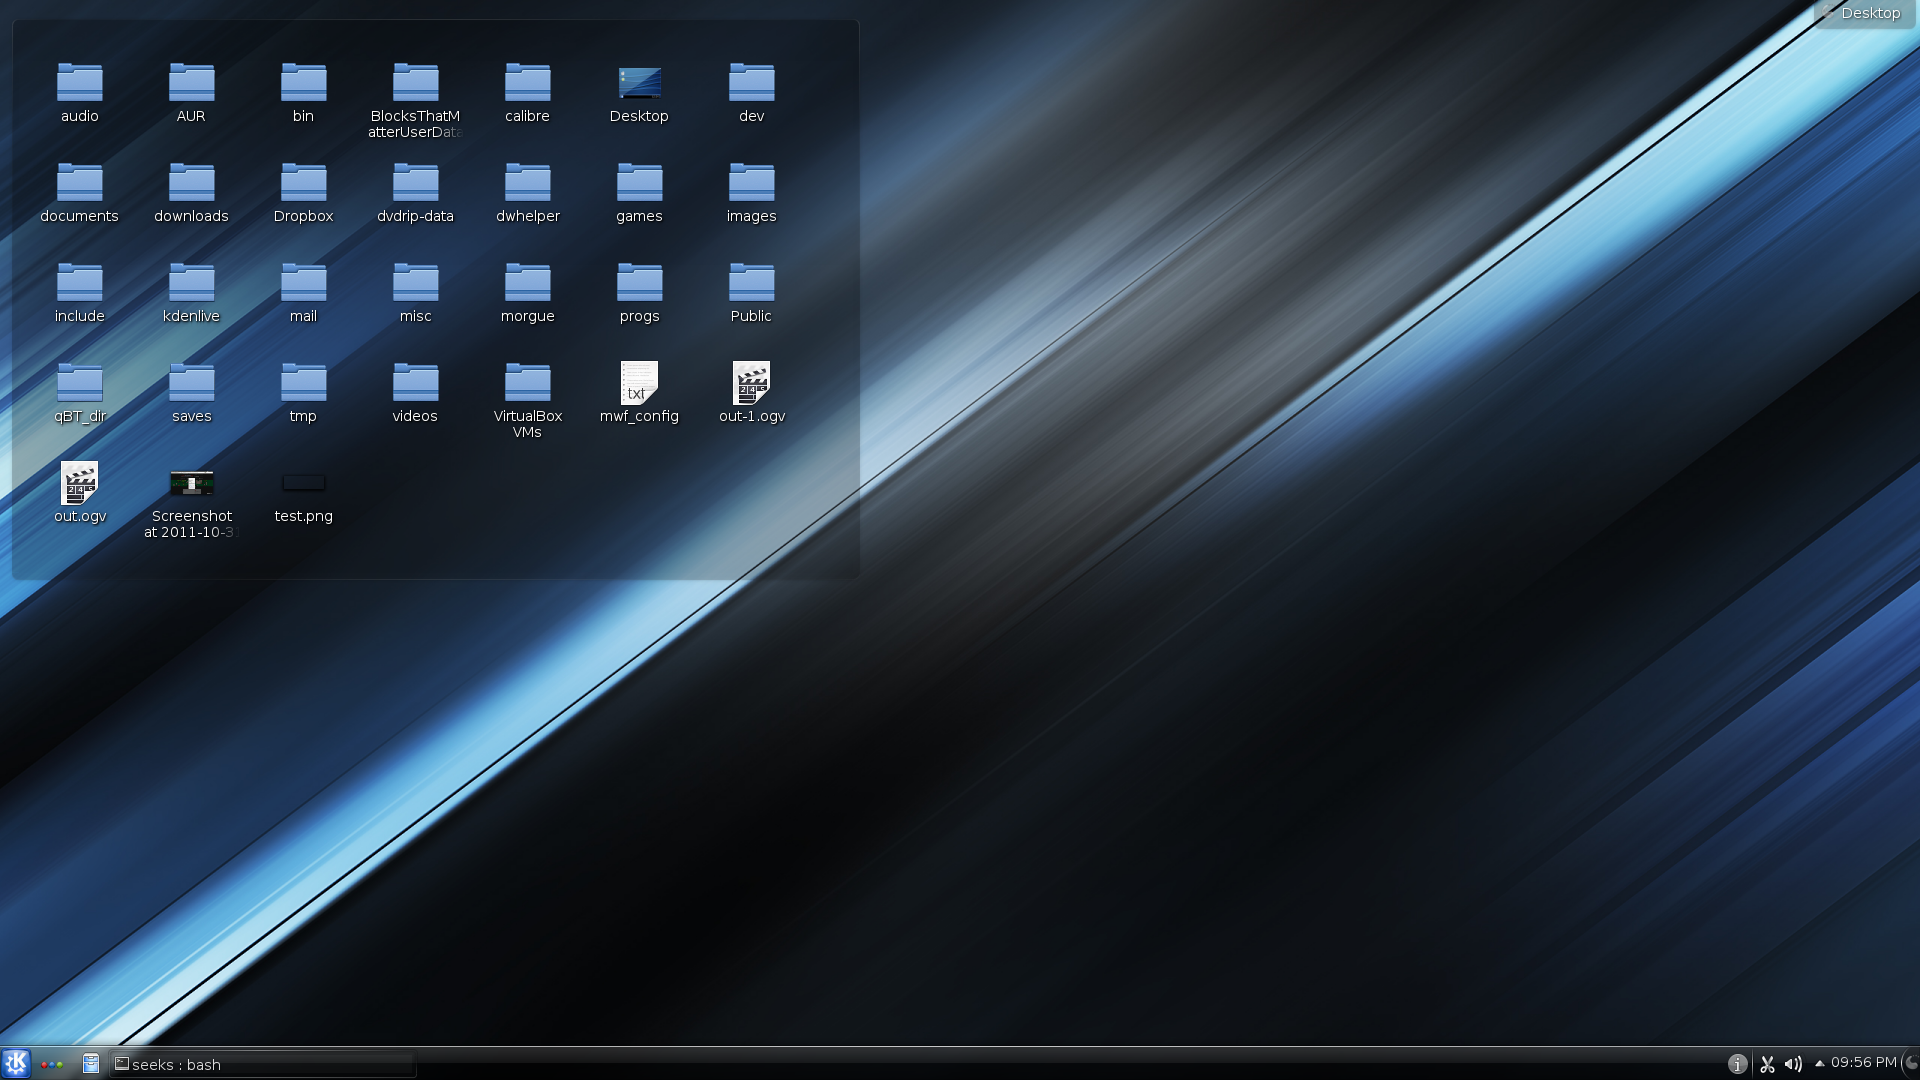 screenshot-kde.png